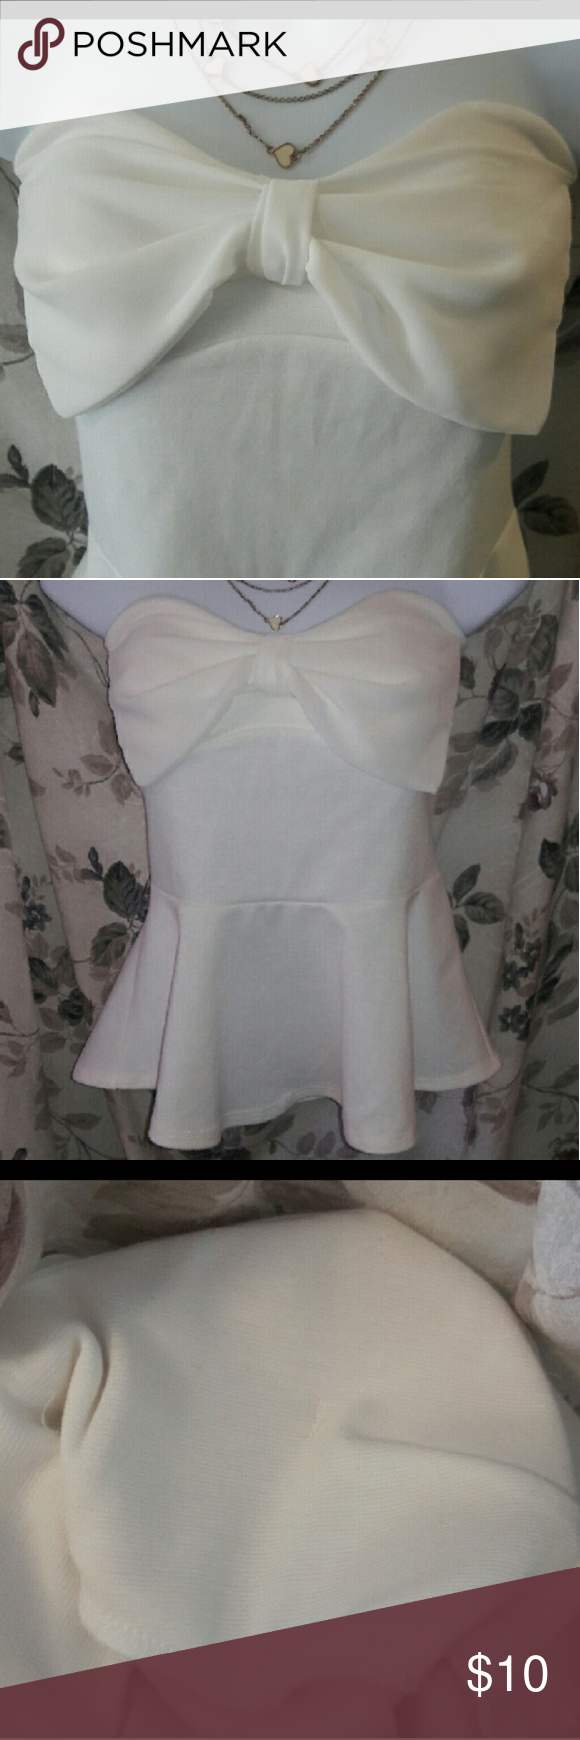 abe12c5439498a NWOT cream peplum top bow 🎀 on front Strapless cream peplum top with super  cute bow detail 🎀 Has built in pads. No flaws. Bundle and save even more  !!!